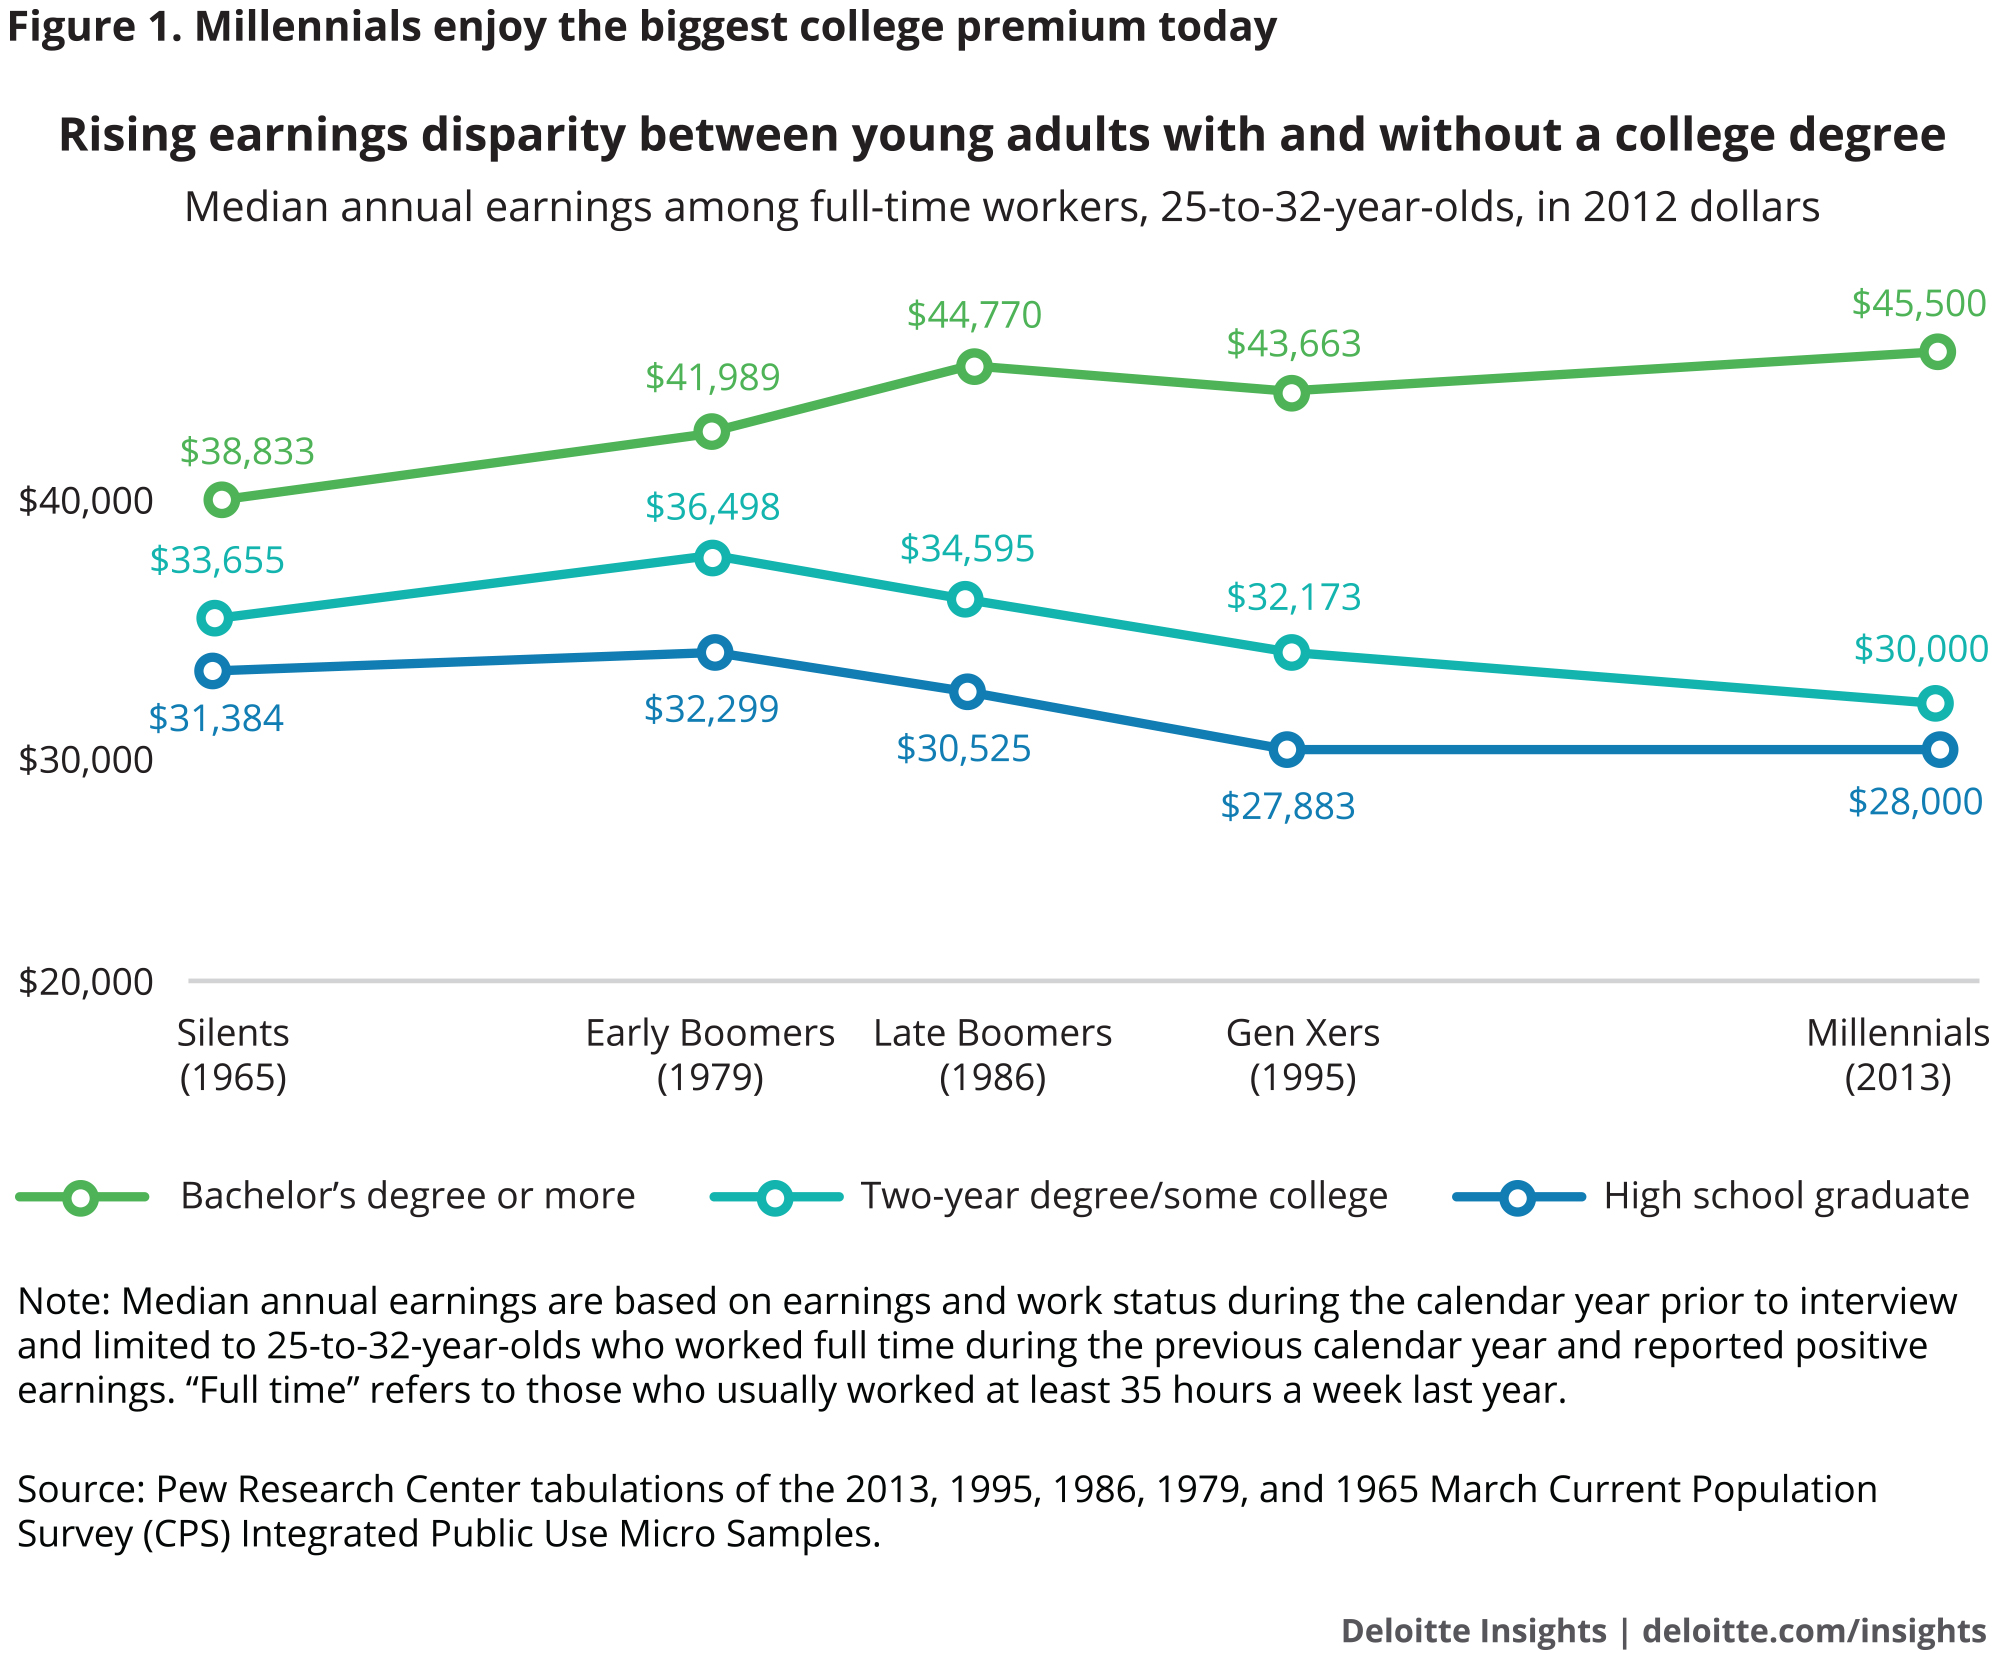 Millennials enjoy the biggest college premium today